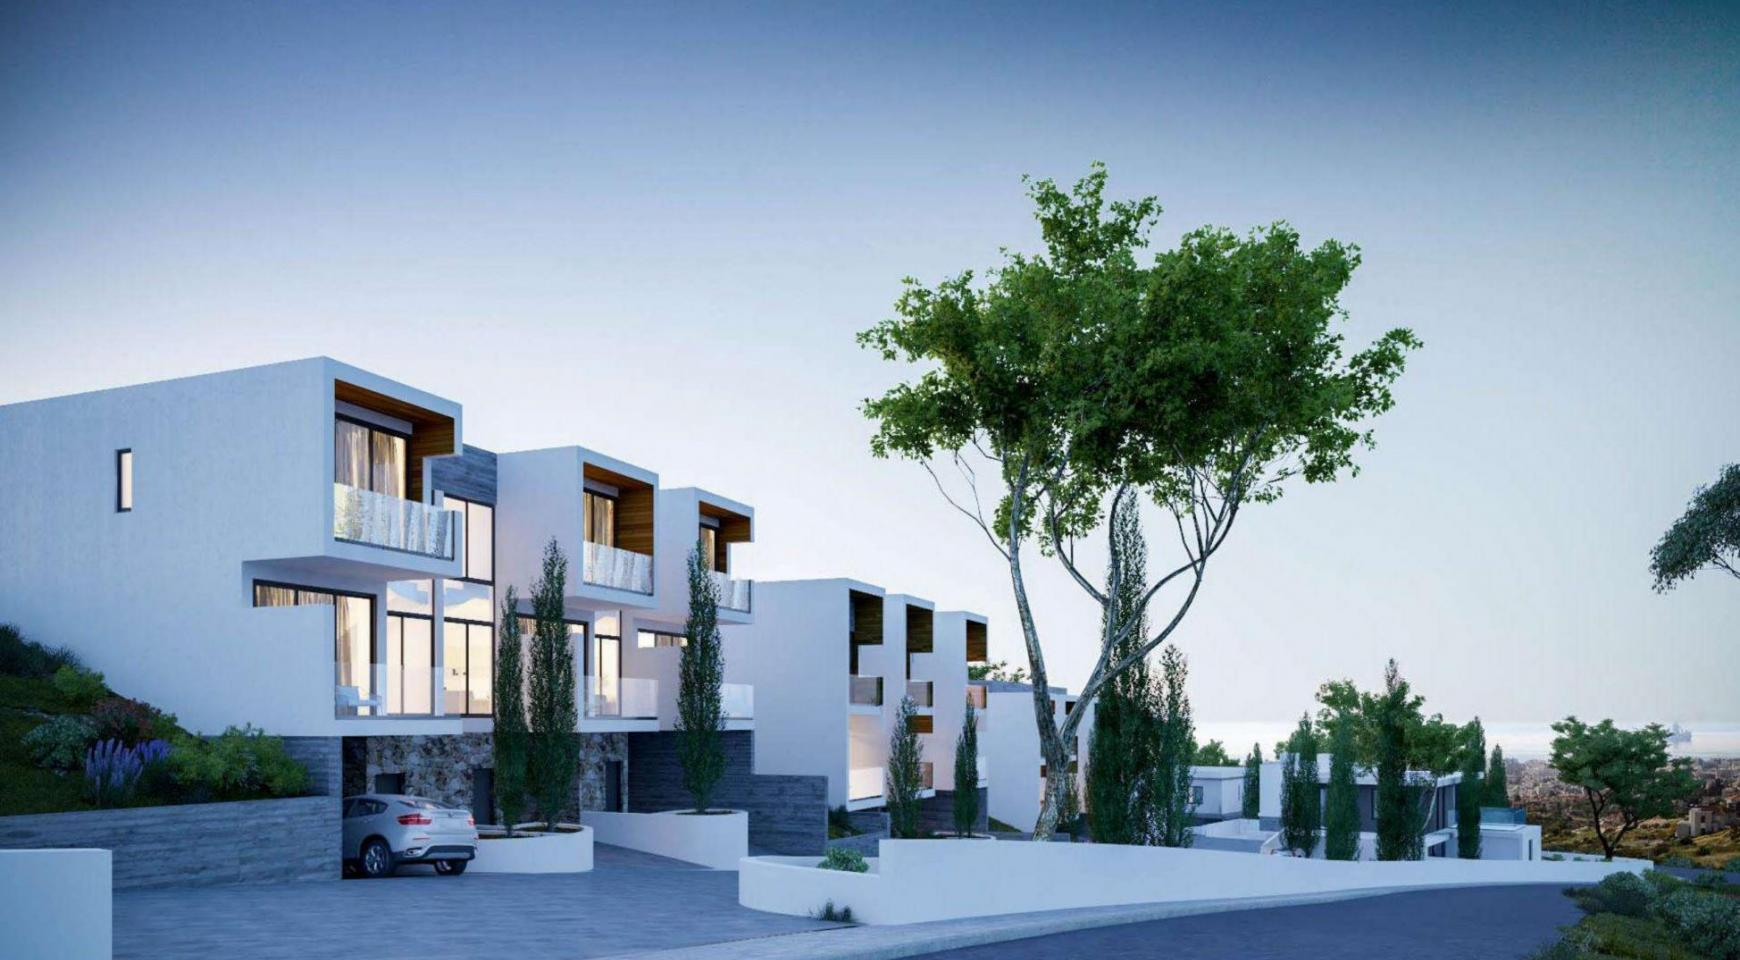 New Luxurious 2 Bedroom Townhouse in Agios Tychonas - 2